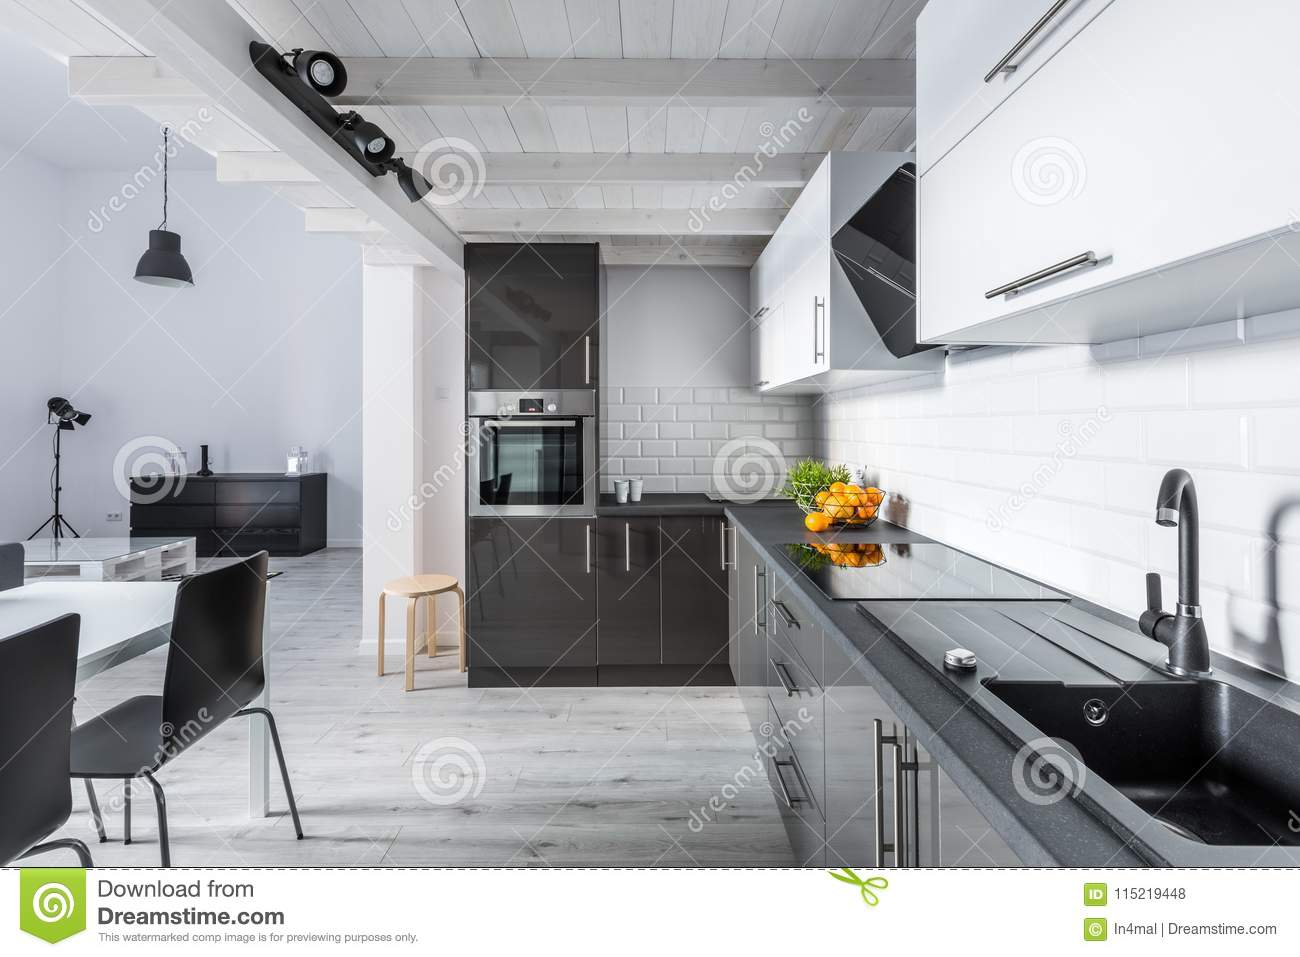 Modern kitchen with rustic ceiling